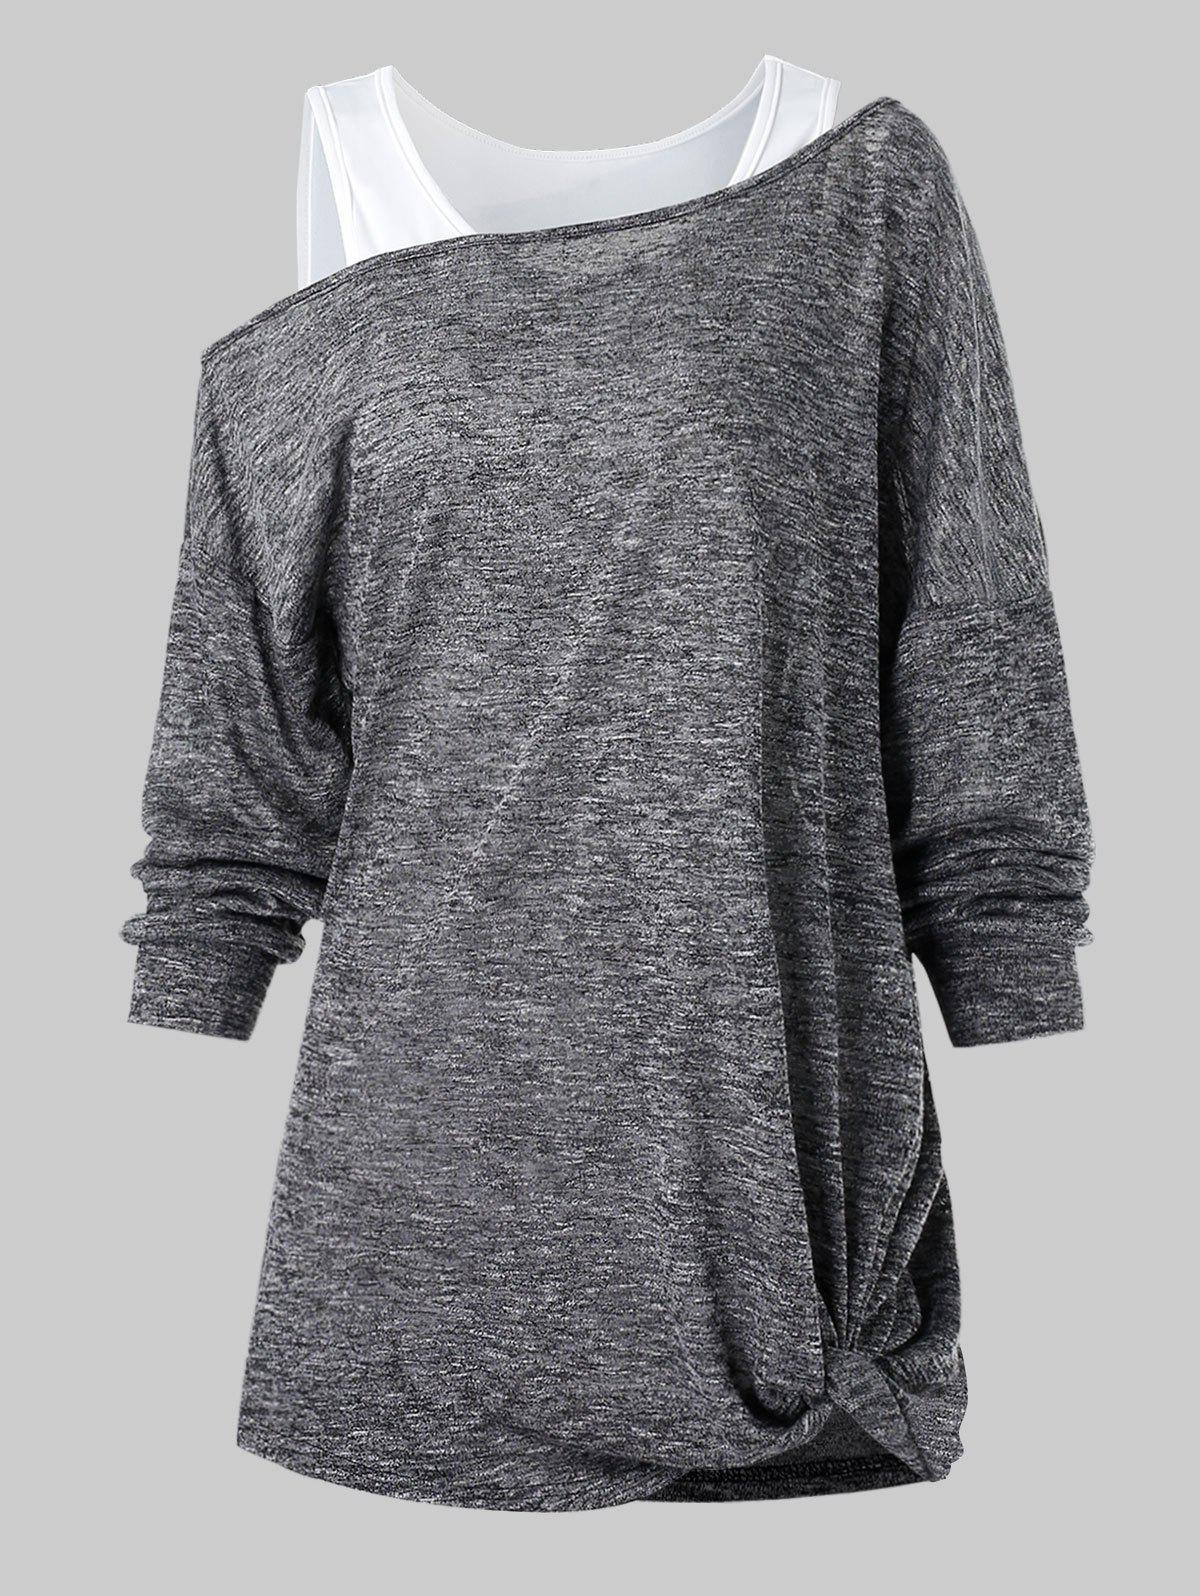 Cheap Skew Collar Marled T Shirt with Solid Tank Top